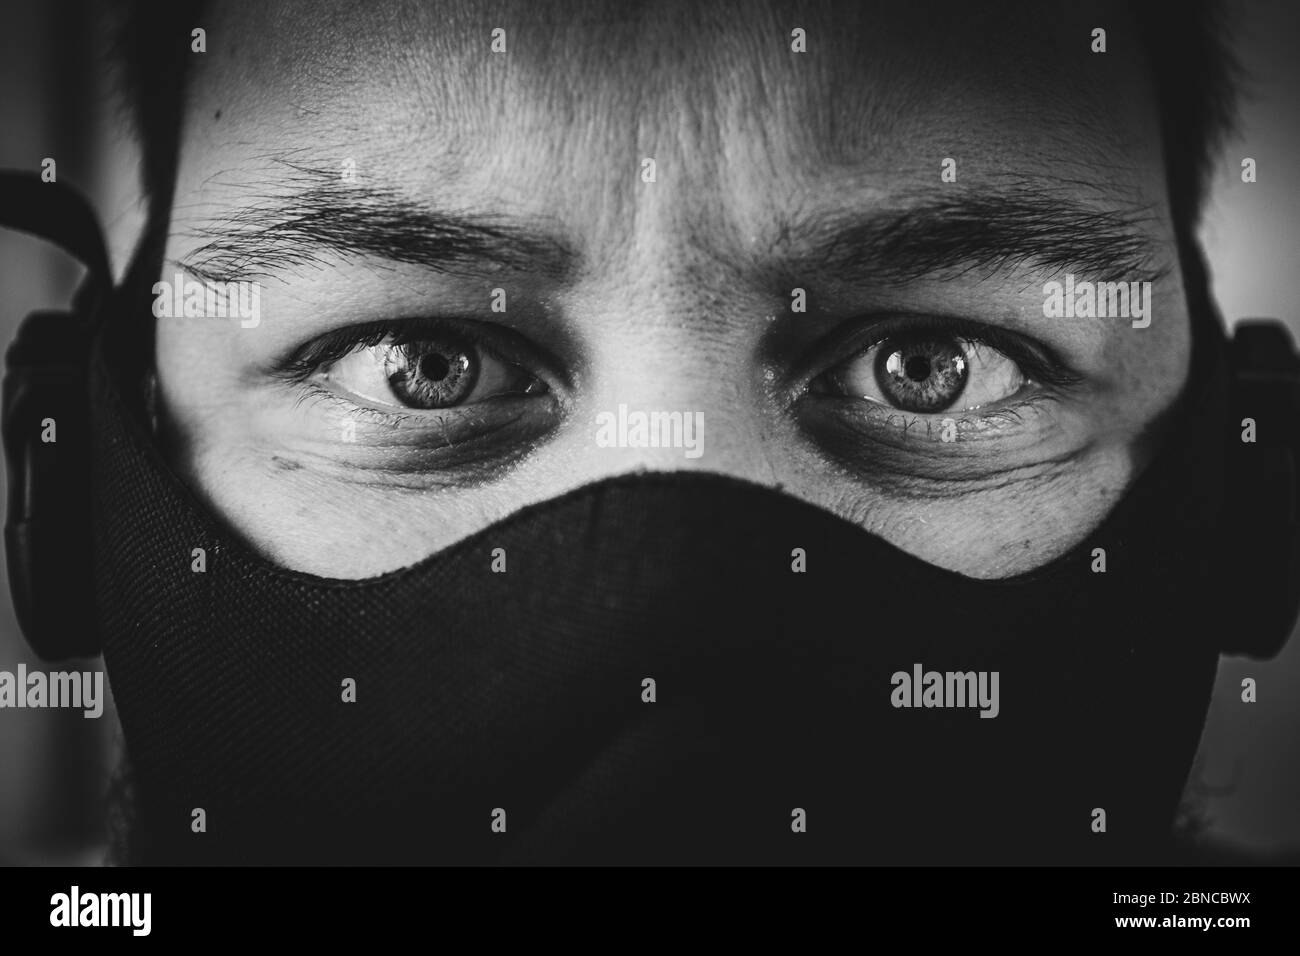 A Greyscale Shallow Shot Of A Male S Face Wearing A Mask Staring Directly Into The Camera Stock Photo Alamy